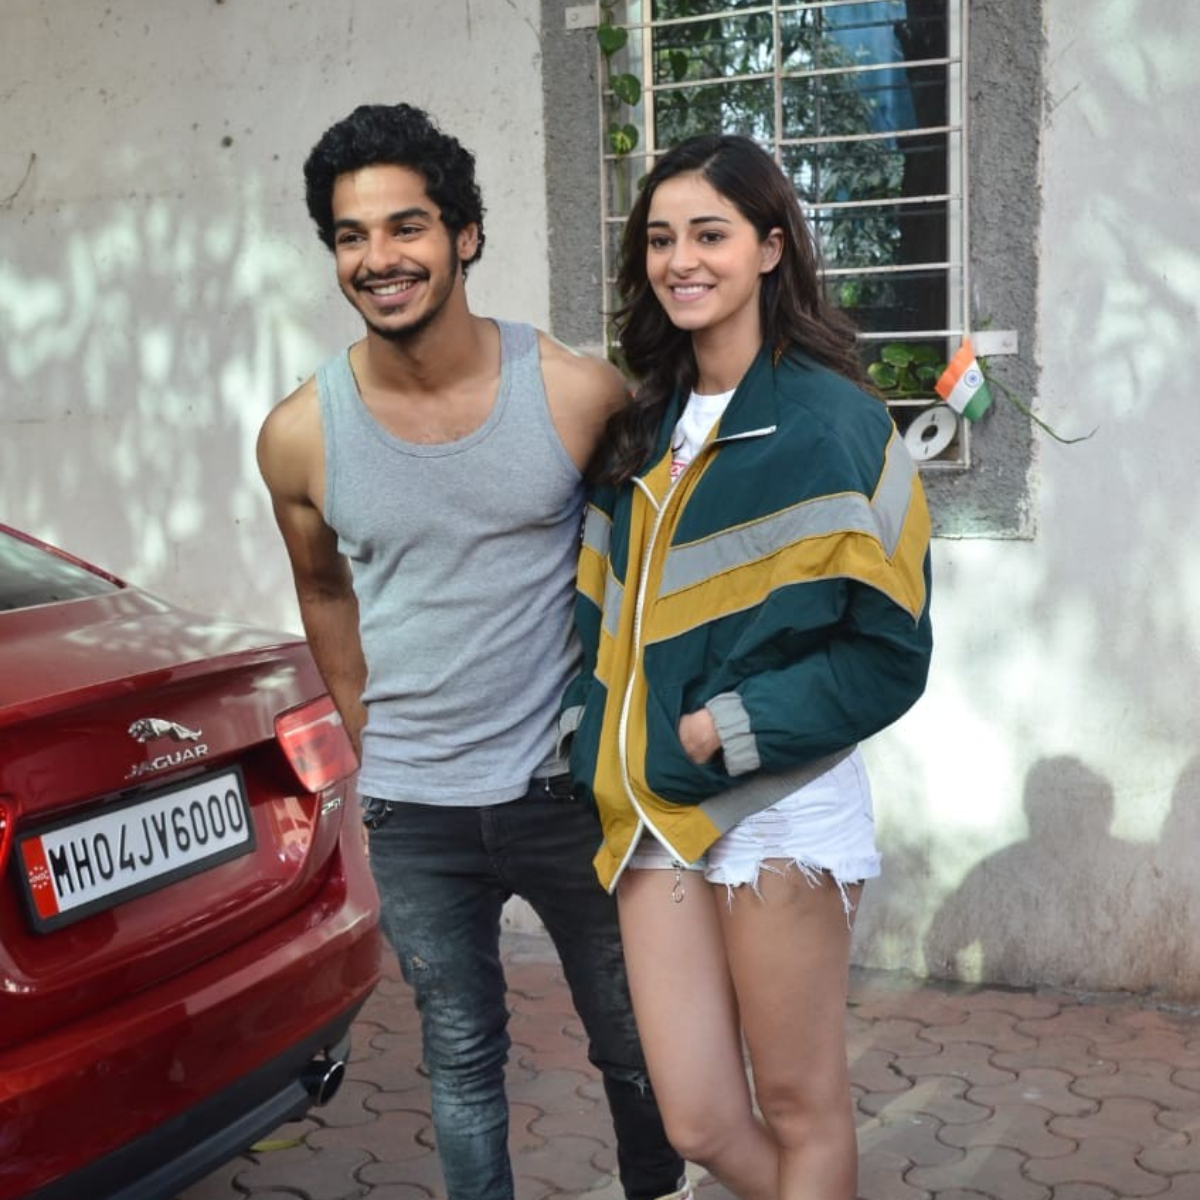 Ananya Panday is all smiles as she poses with Khaali Peeli co star Ishaan Khatter post dance rehearsal